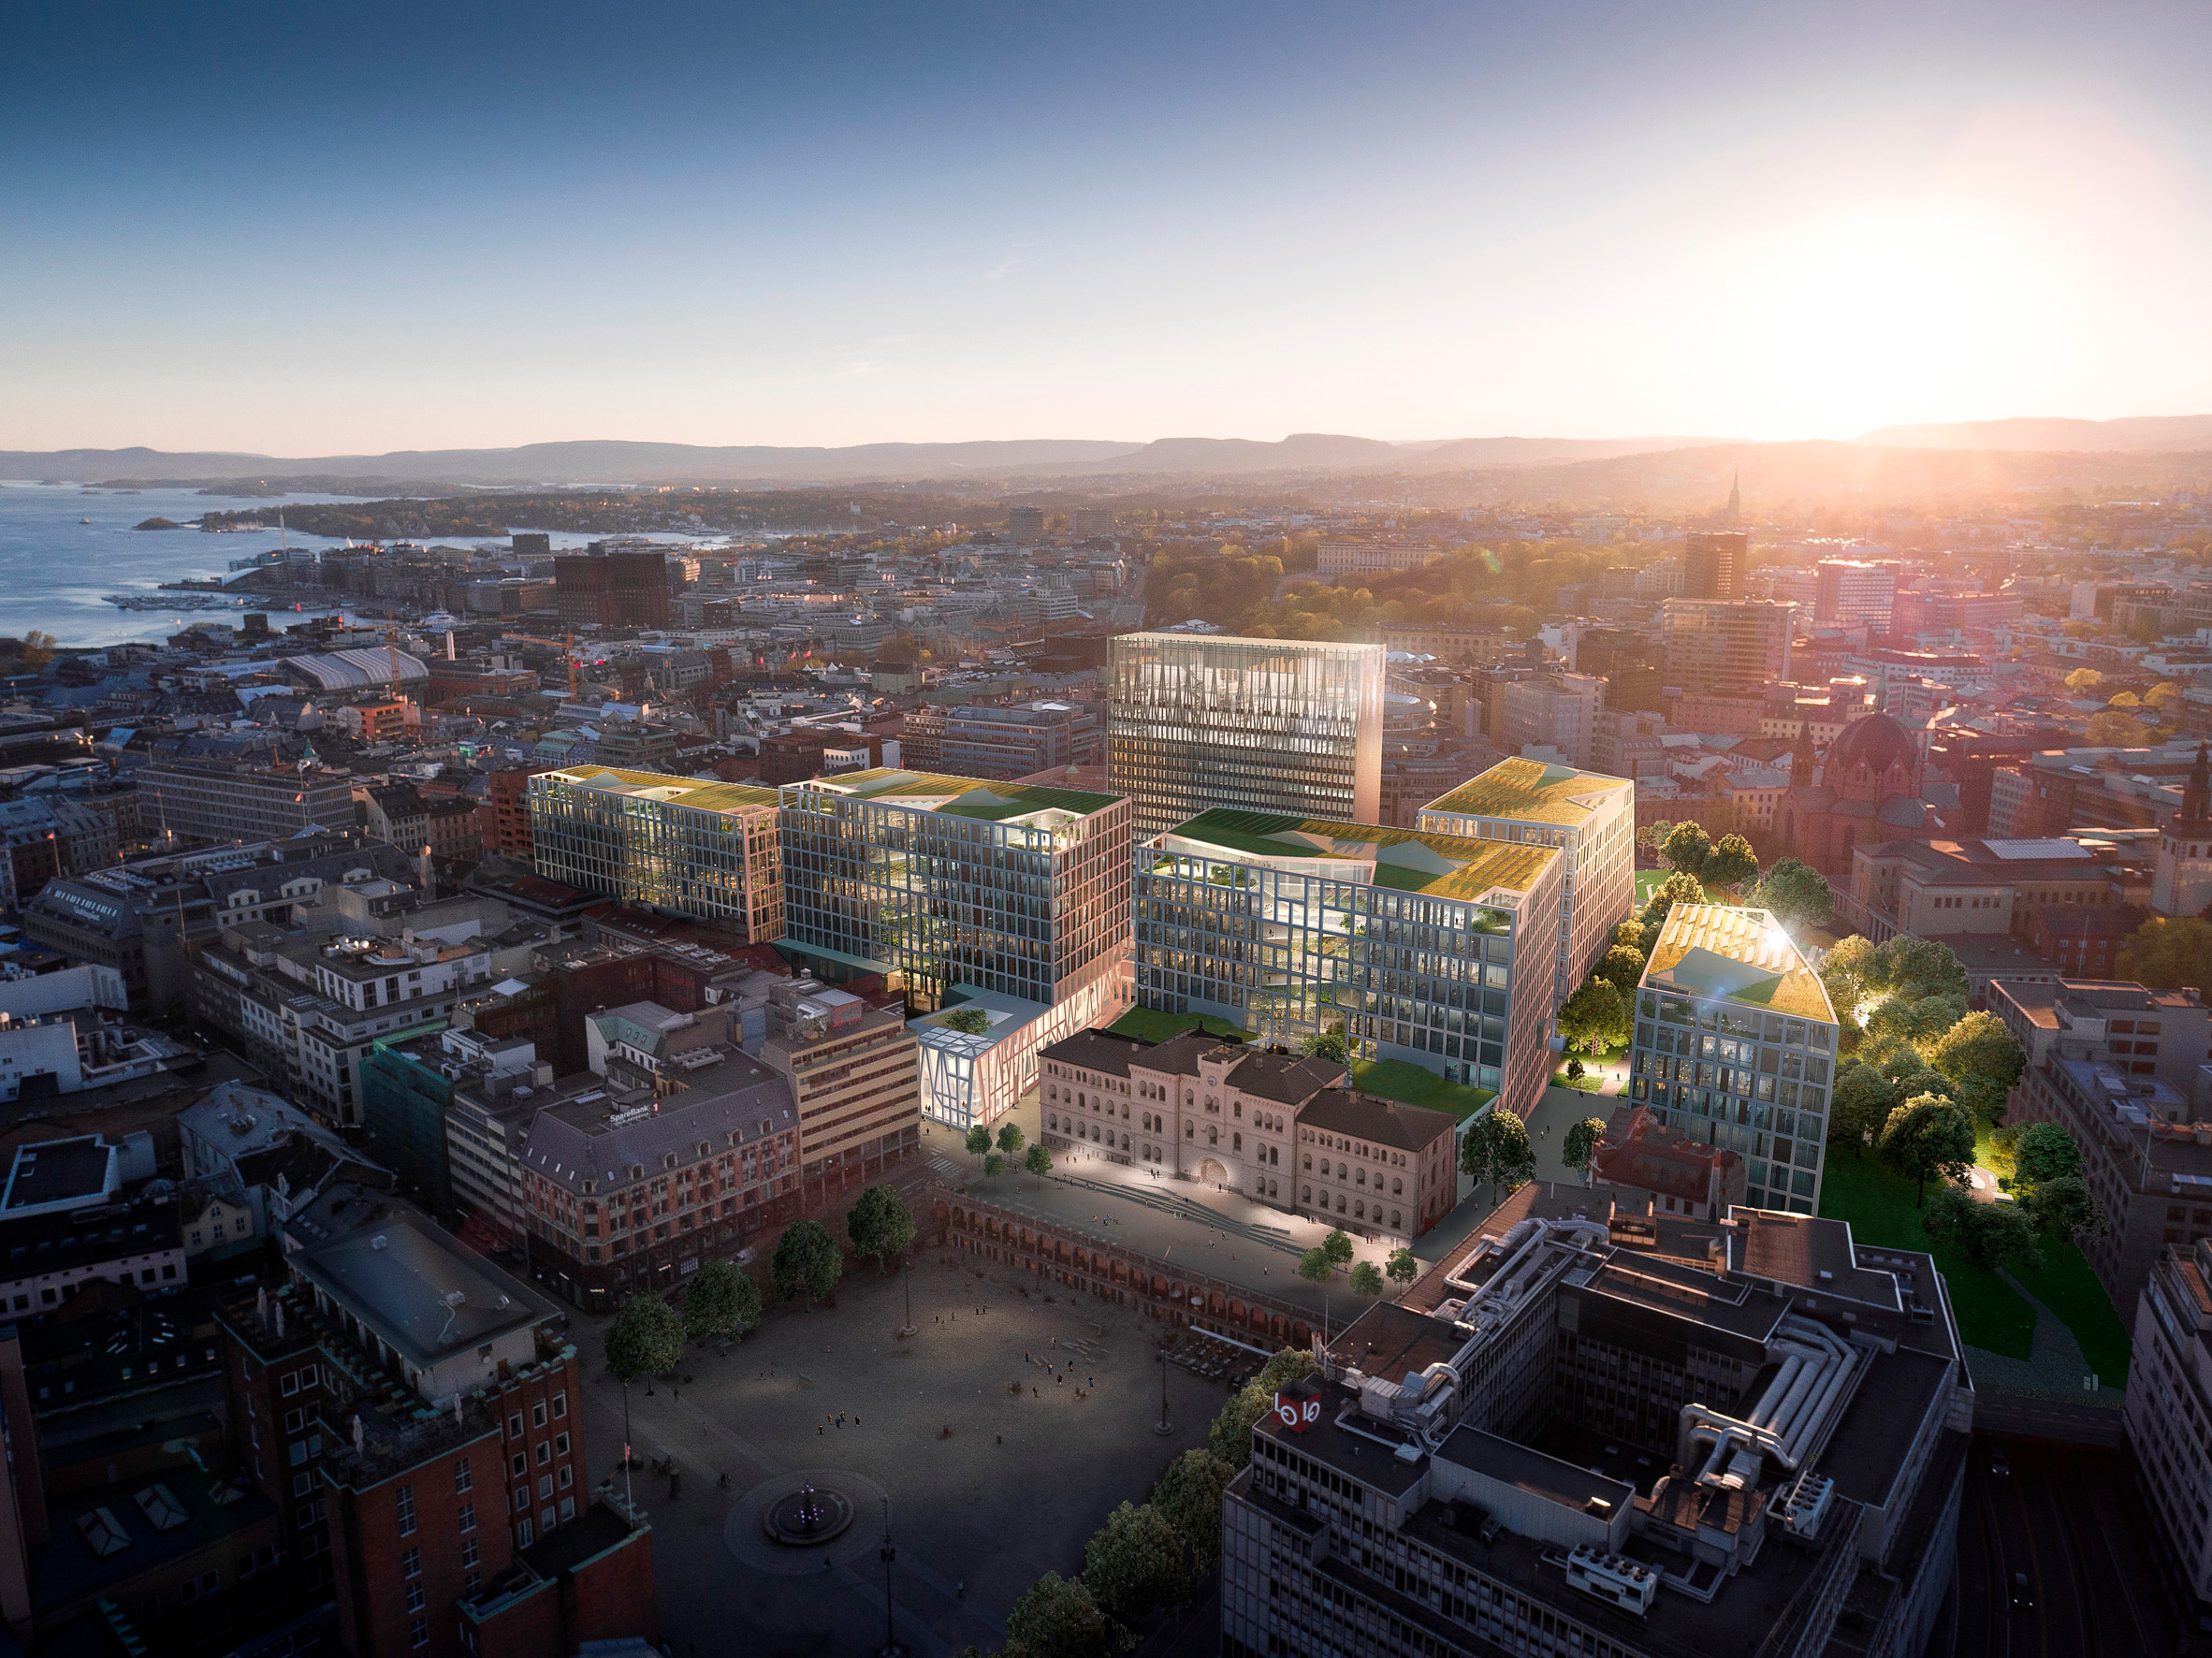 New designs unveiled for Norwegian government headquarters following 2011 terrorist attack